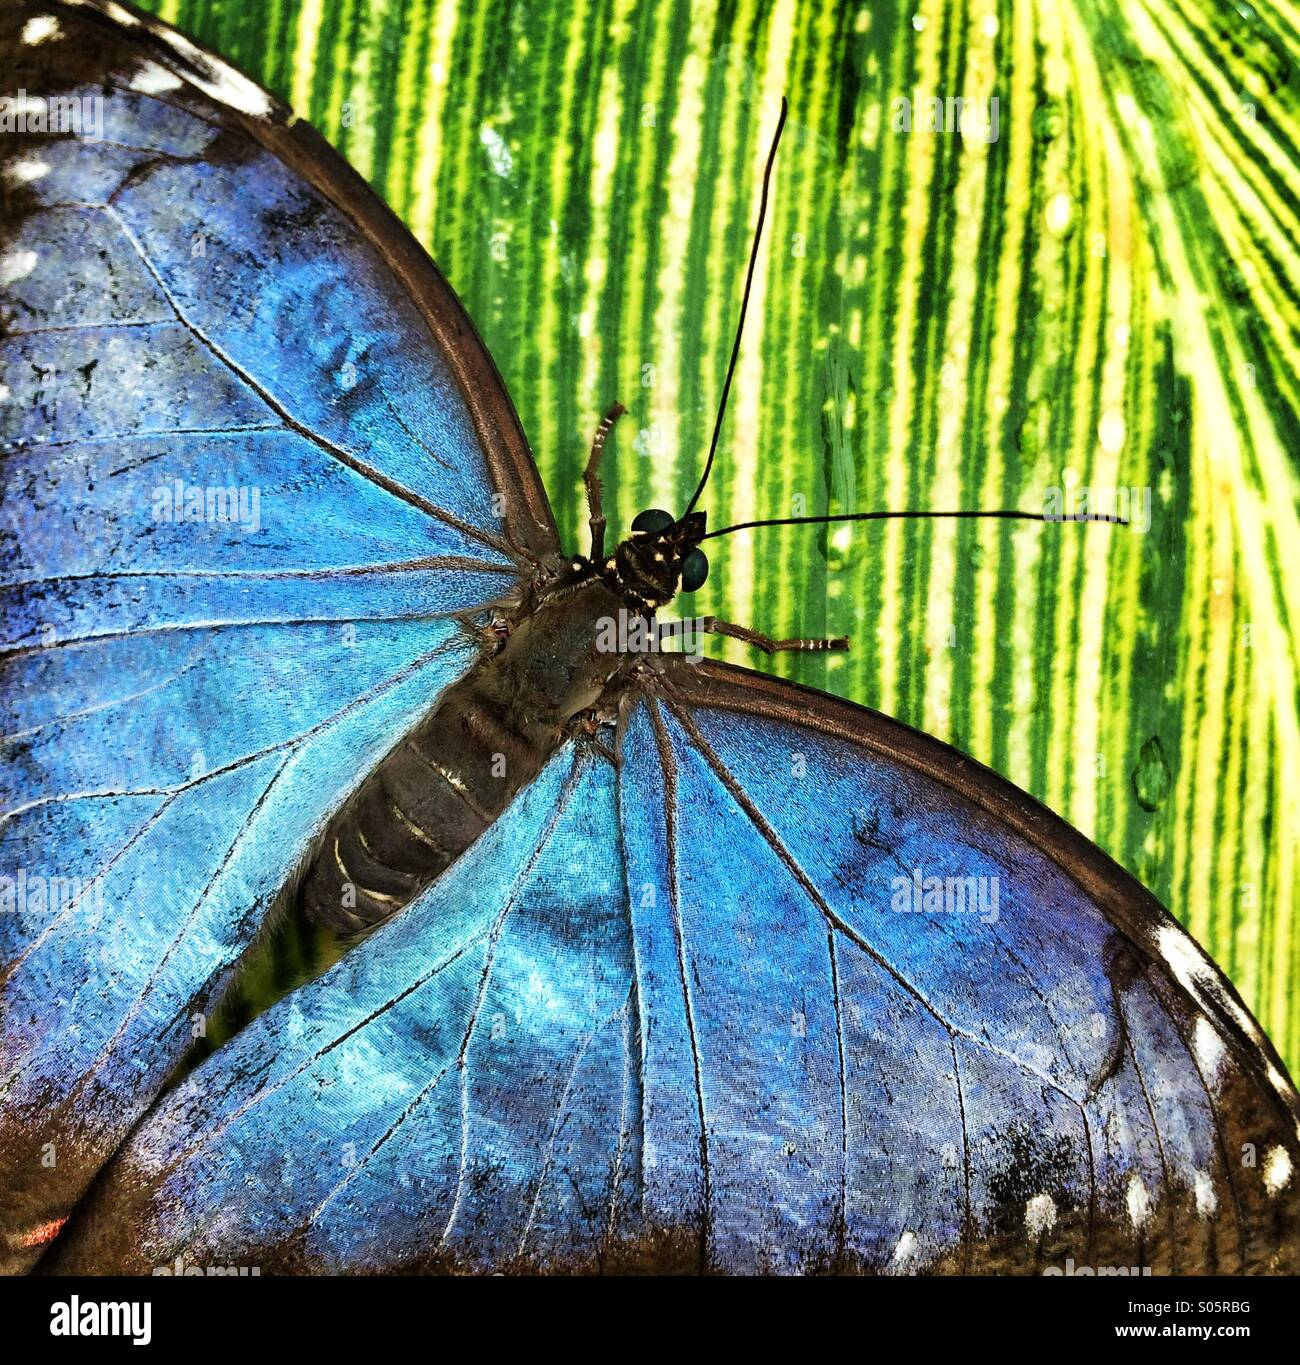 Close up of blue butterfly sur feuille verte Photo Stock